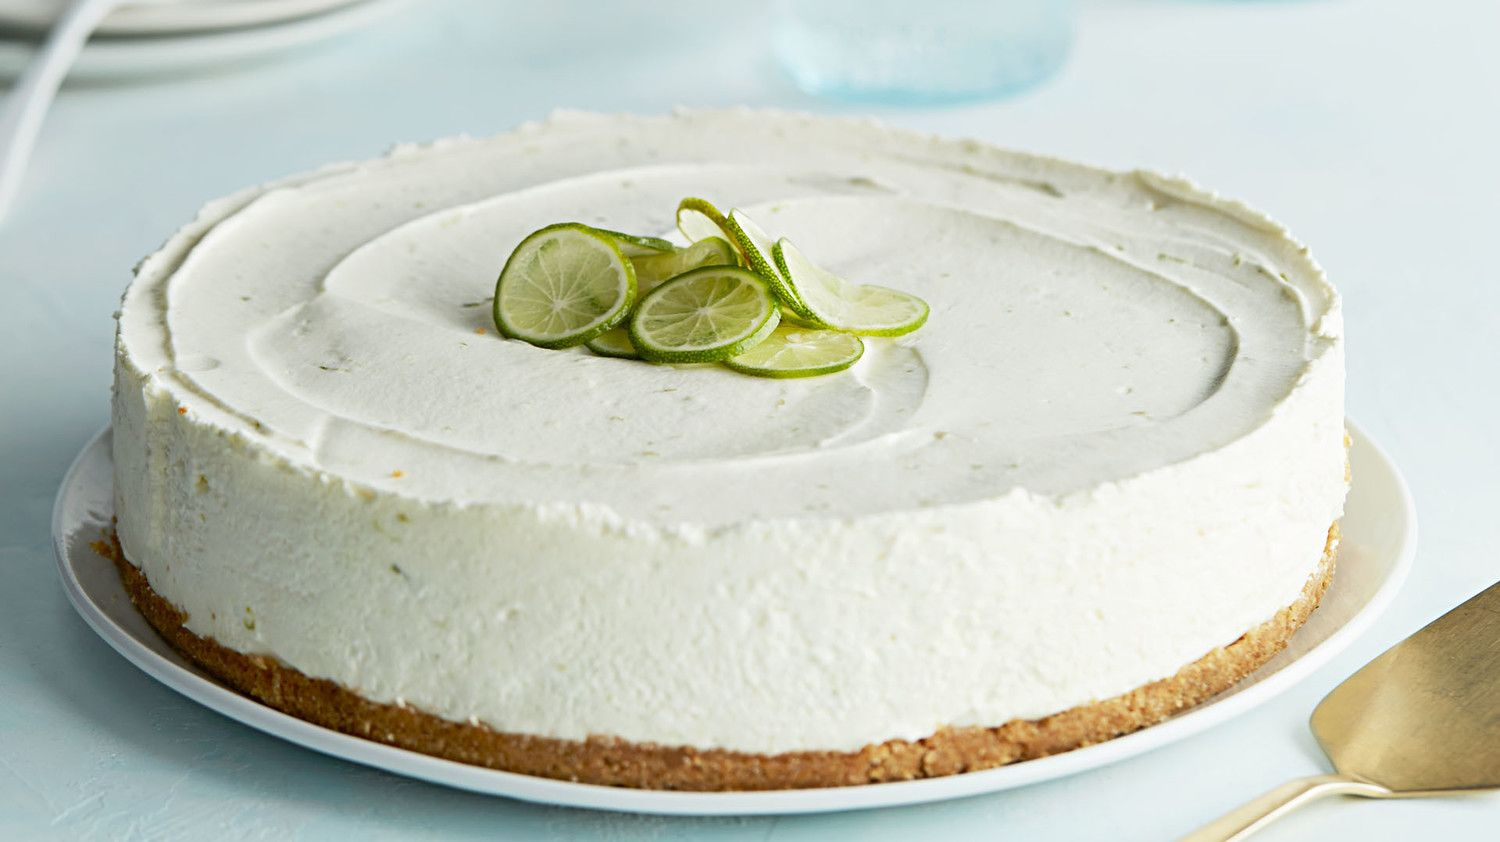 No Bake Key Lime Cheesecake Recipe Recipe Desserts Lime Cheesecake Cheesecake Recipes